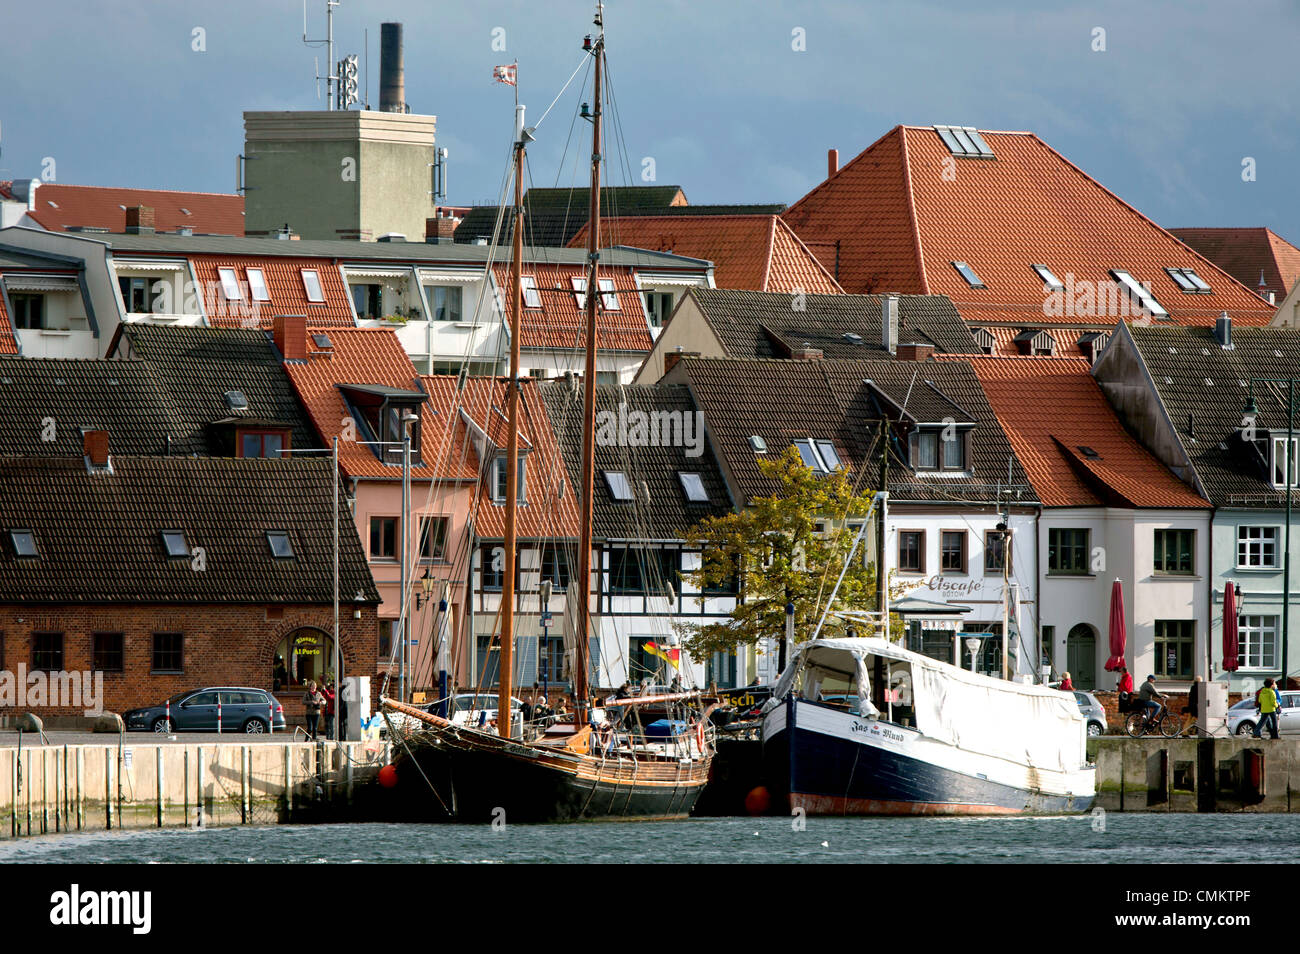 Wismar, Germany. 28th Oct, 2013. A traditional sailing vessel and a fishing boat are moored at the city port of - Stock Image